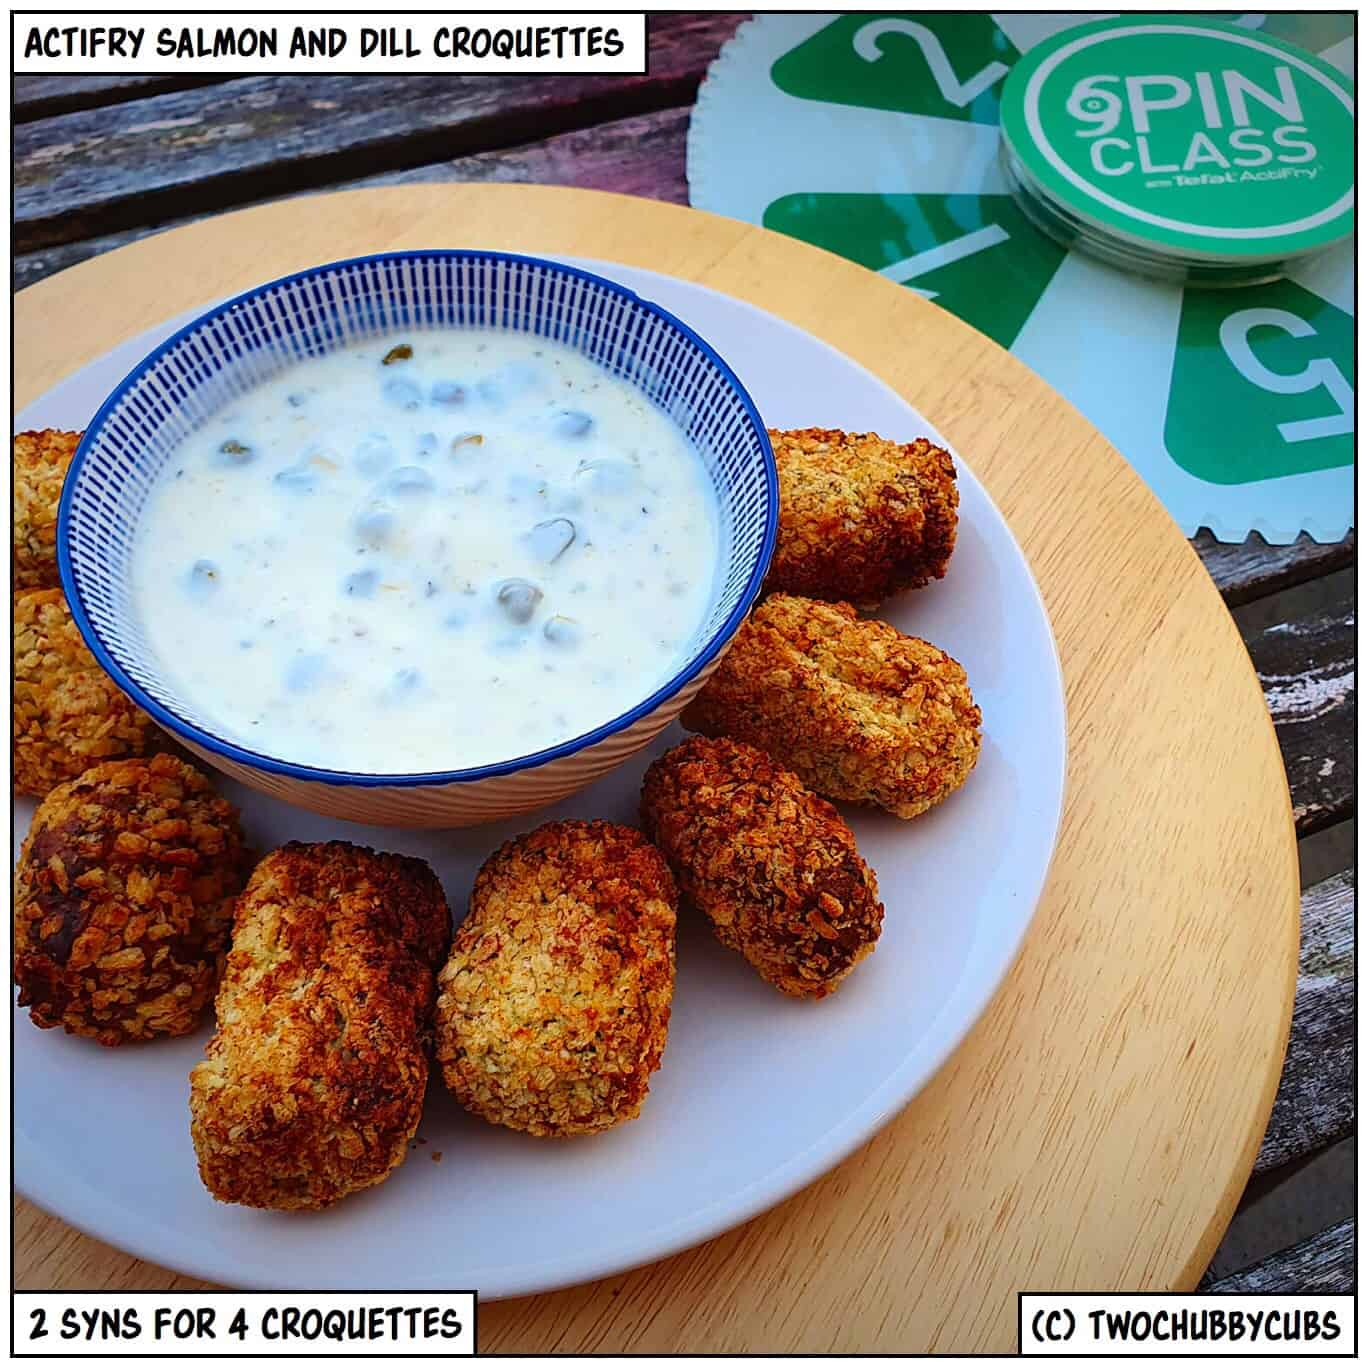 Actifry Salmon And Dill Croquettes